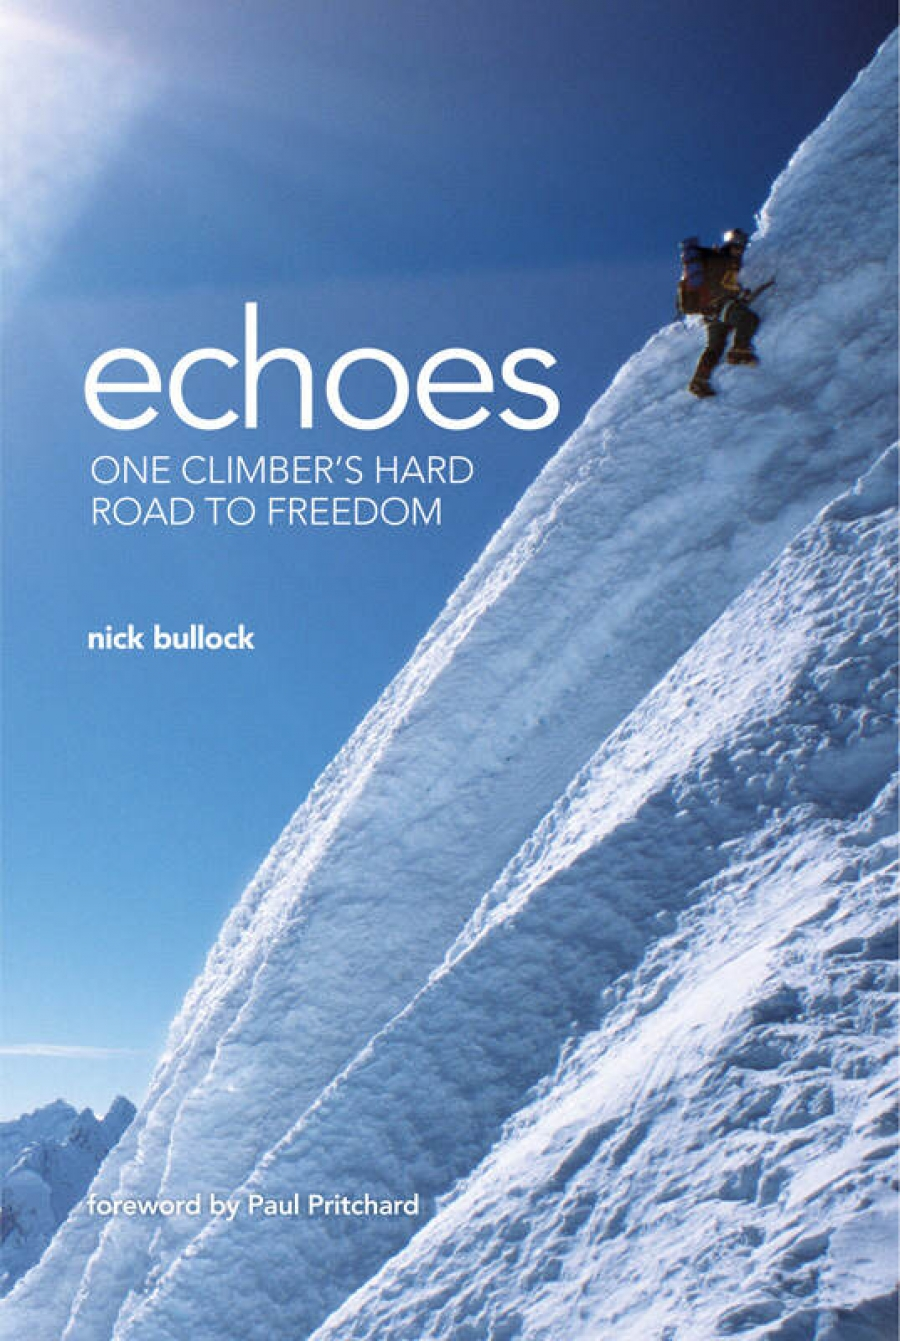 Echoes by Nick Bullock - reviewed